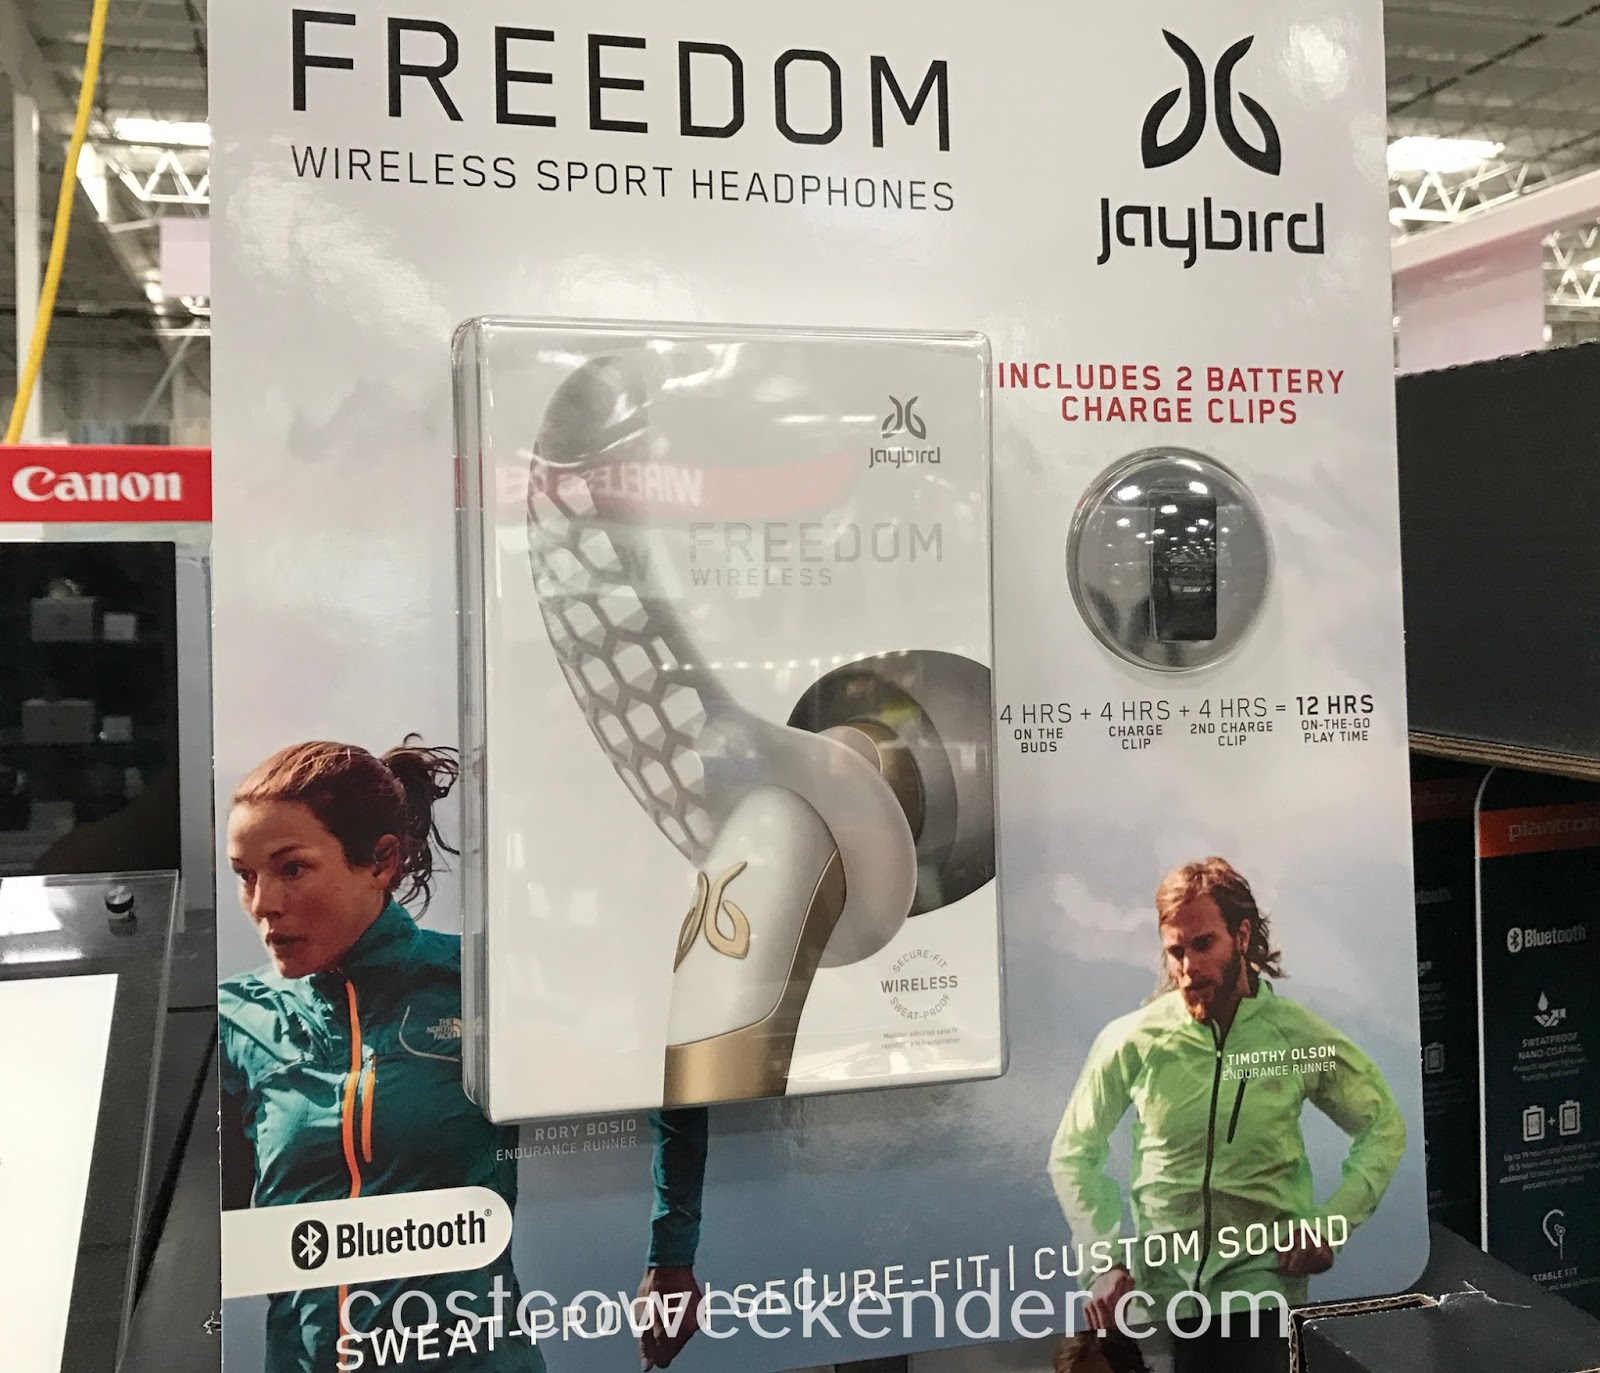 Listen to your music or take a phone call with the Jaybird Freedom Wireless Sport Headphones